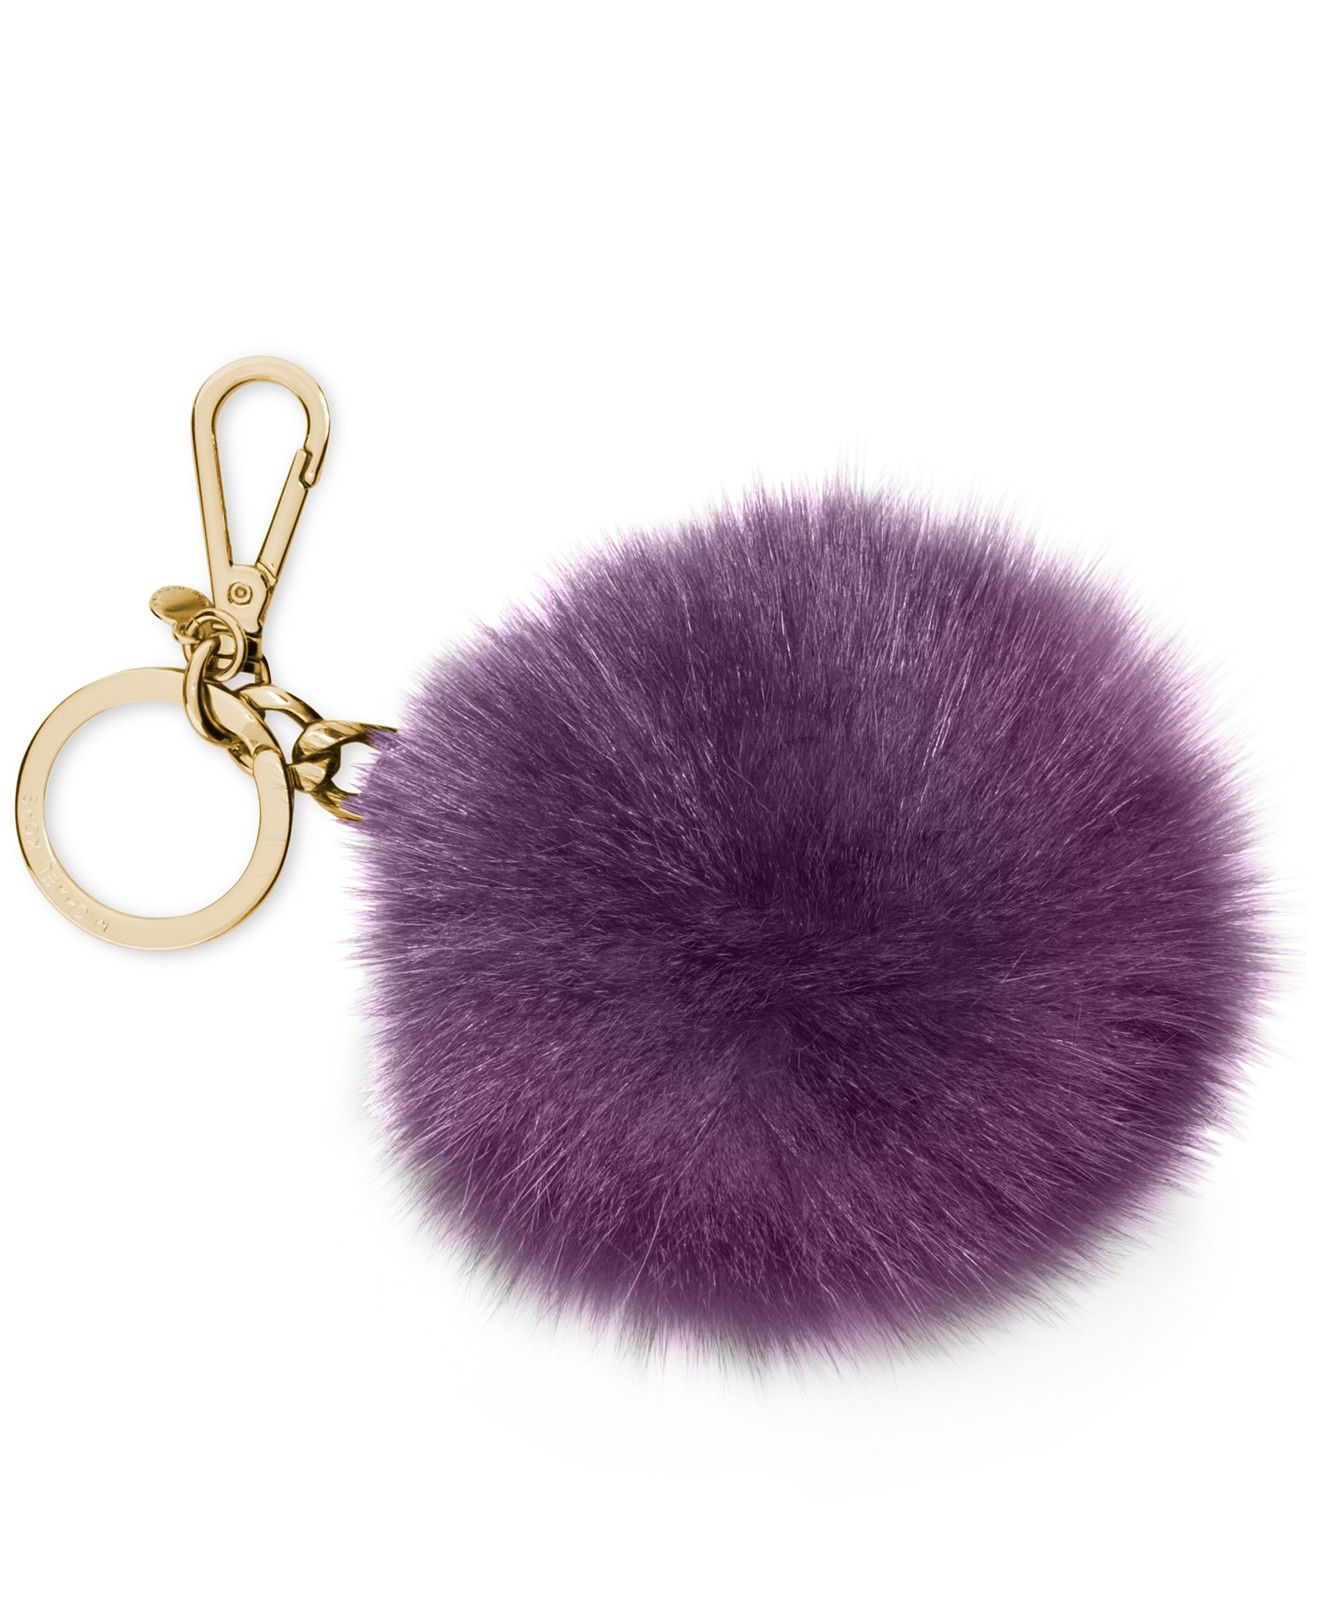 baa9764801d79 MICHAEL Michael Kors Extra Large Fur Pom Pom Key Chain - Handbags    Accessories - Macy s